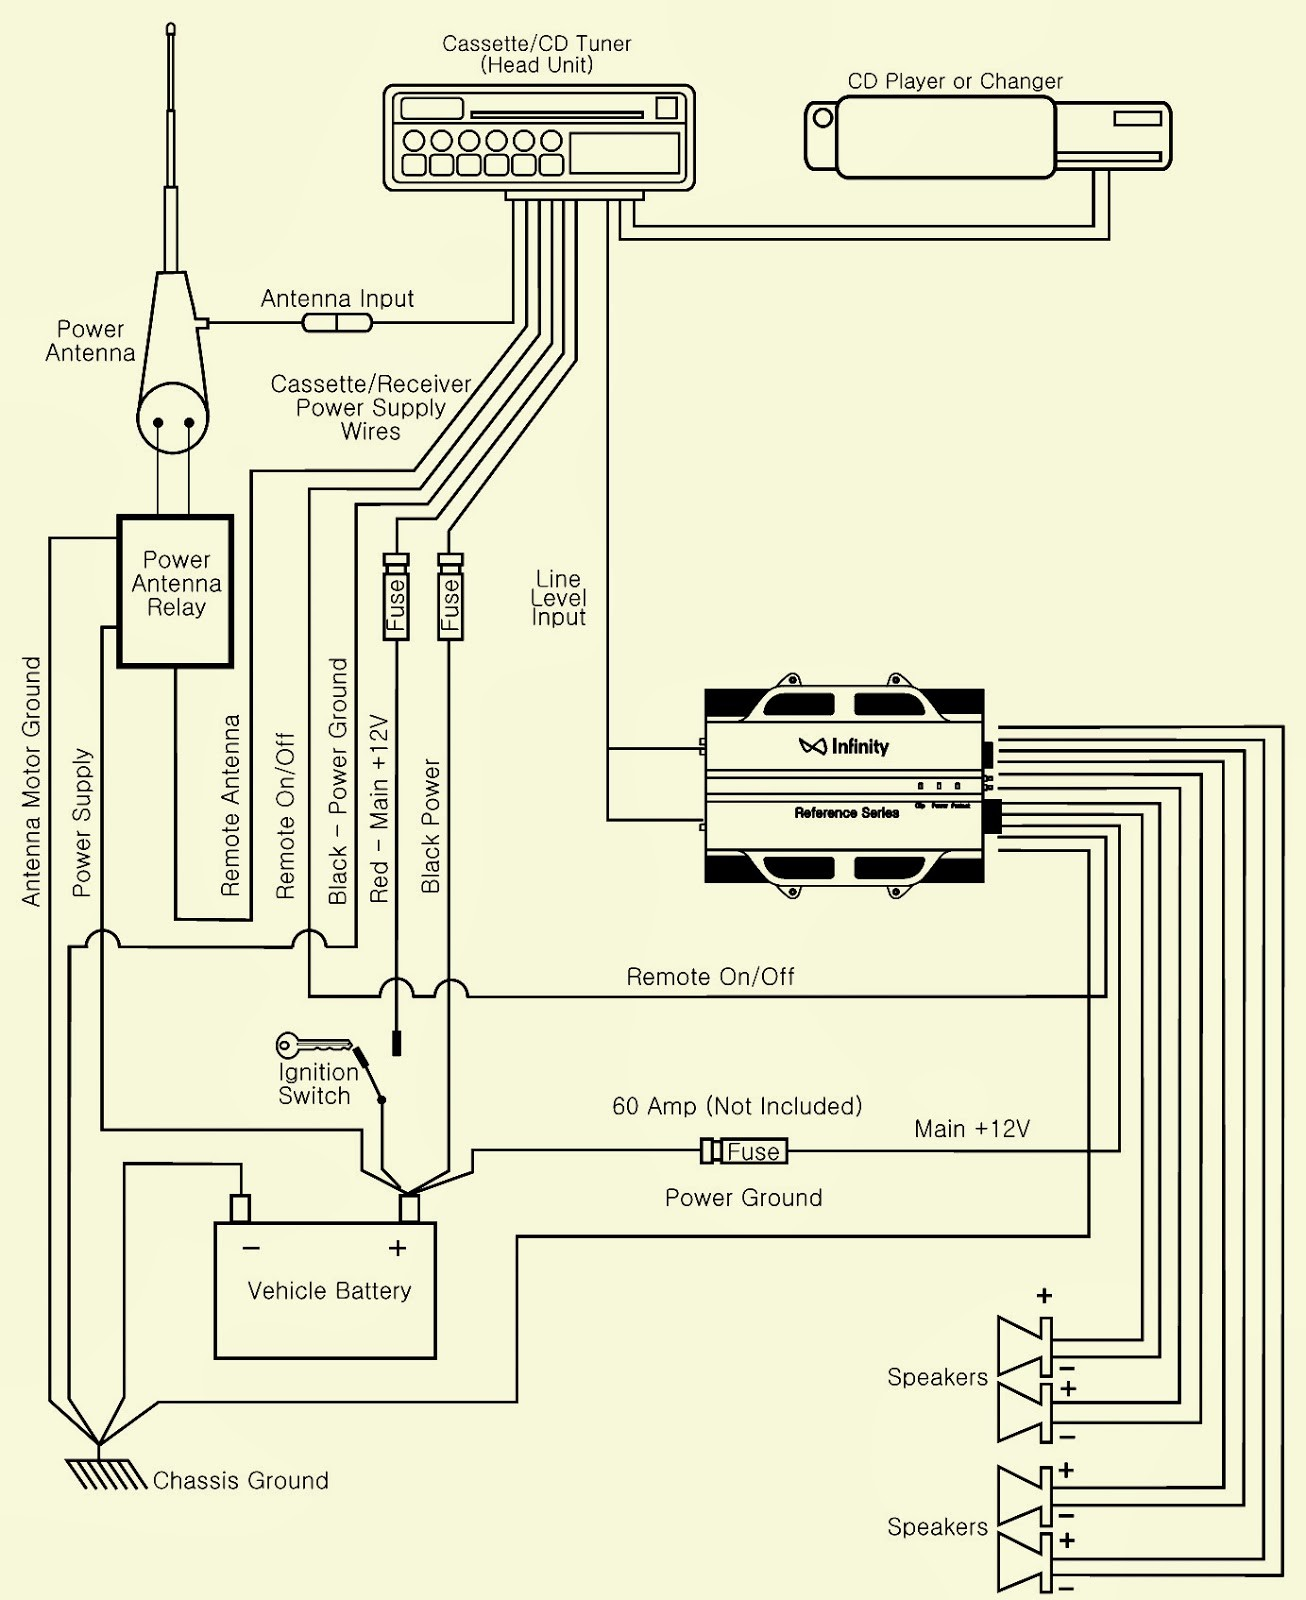 Wiring Diagram for Car Stereo with Amplifier Amp Wiring Diagrams Blurts Of Wiring Diagram for Car Stereo with Amplifier